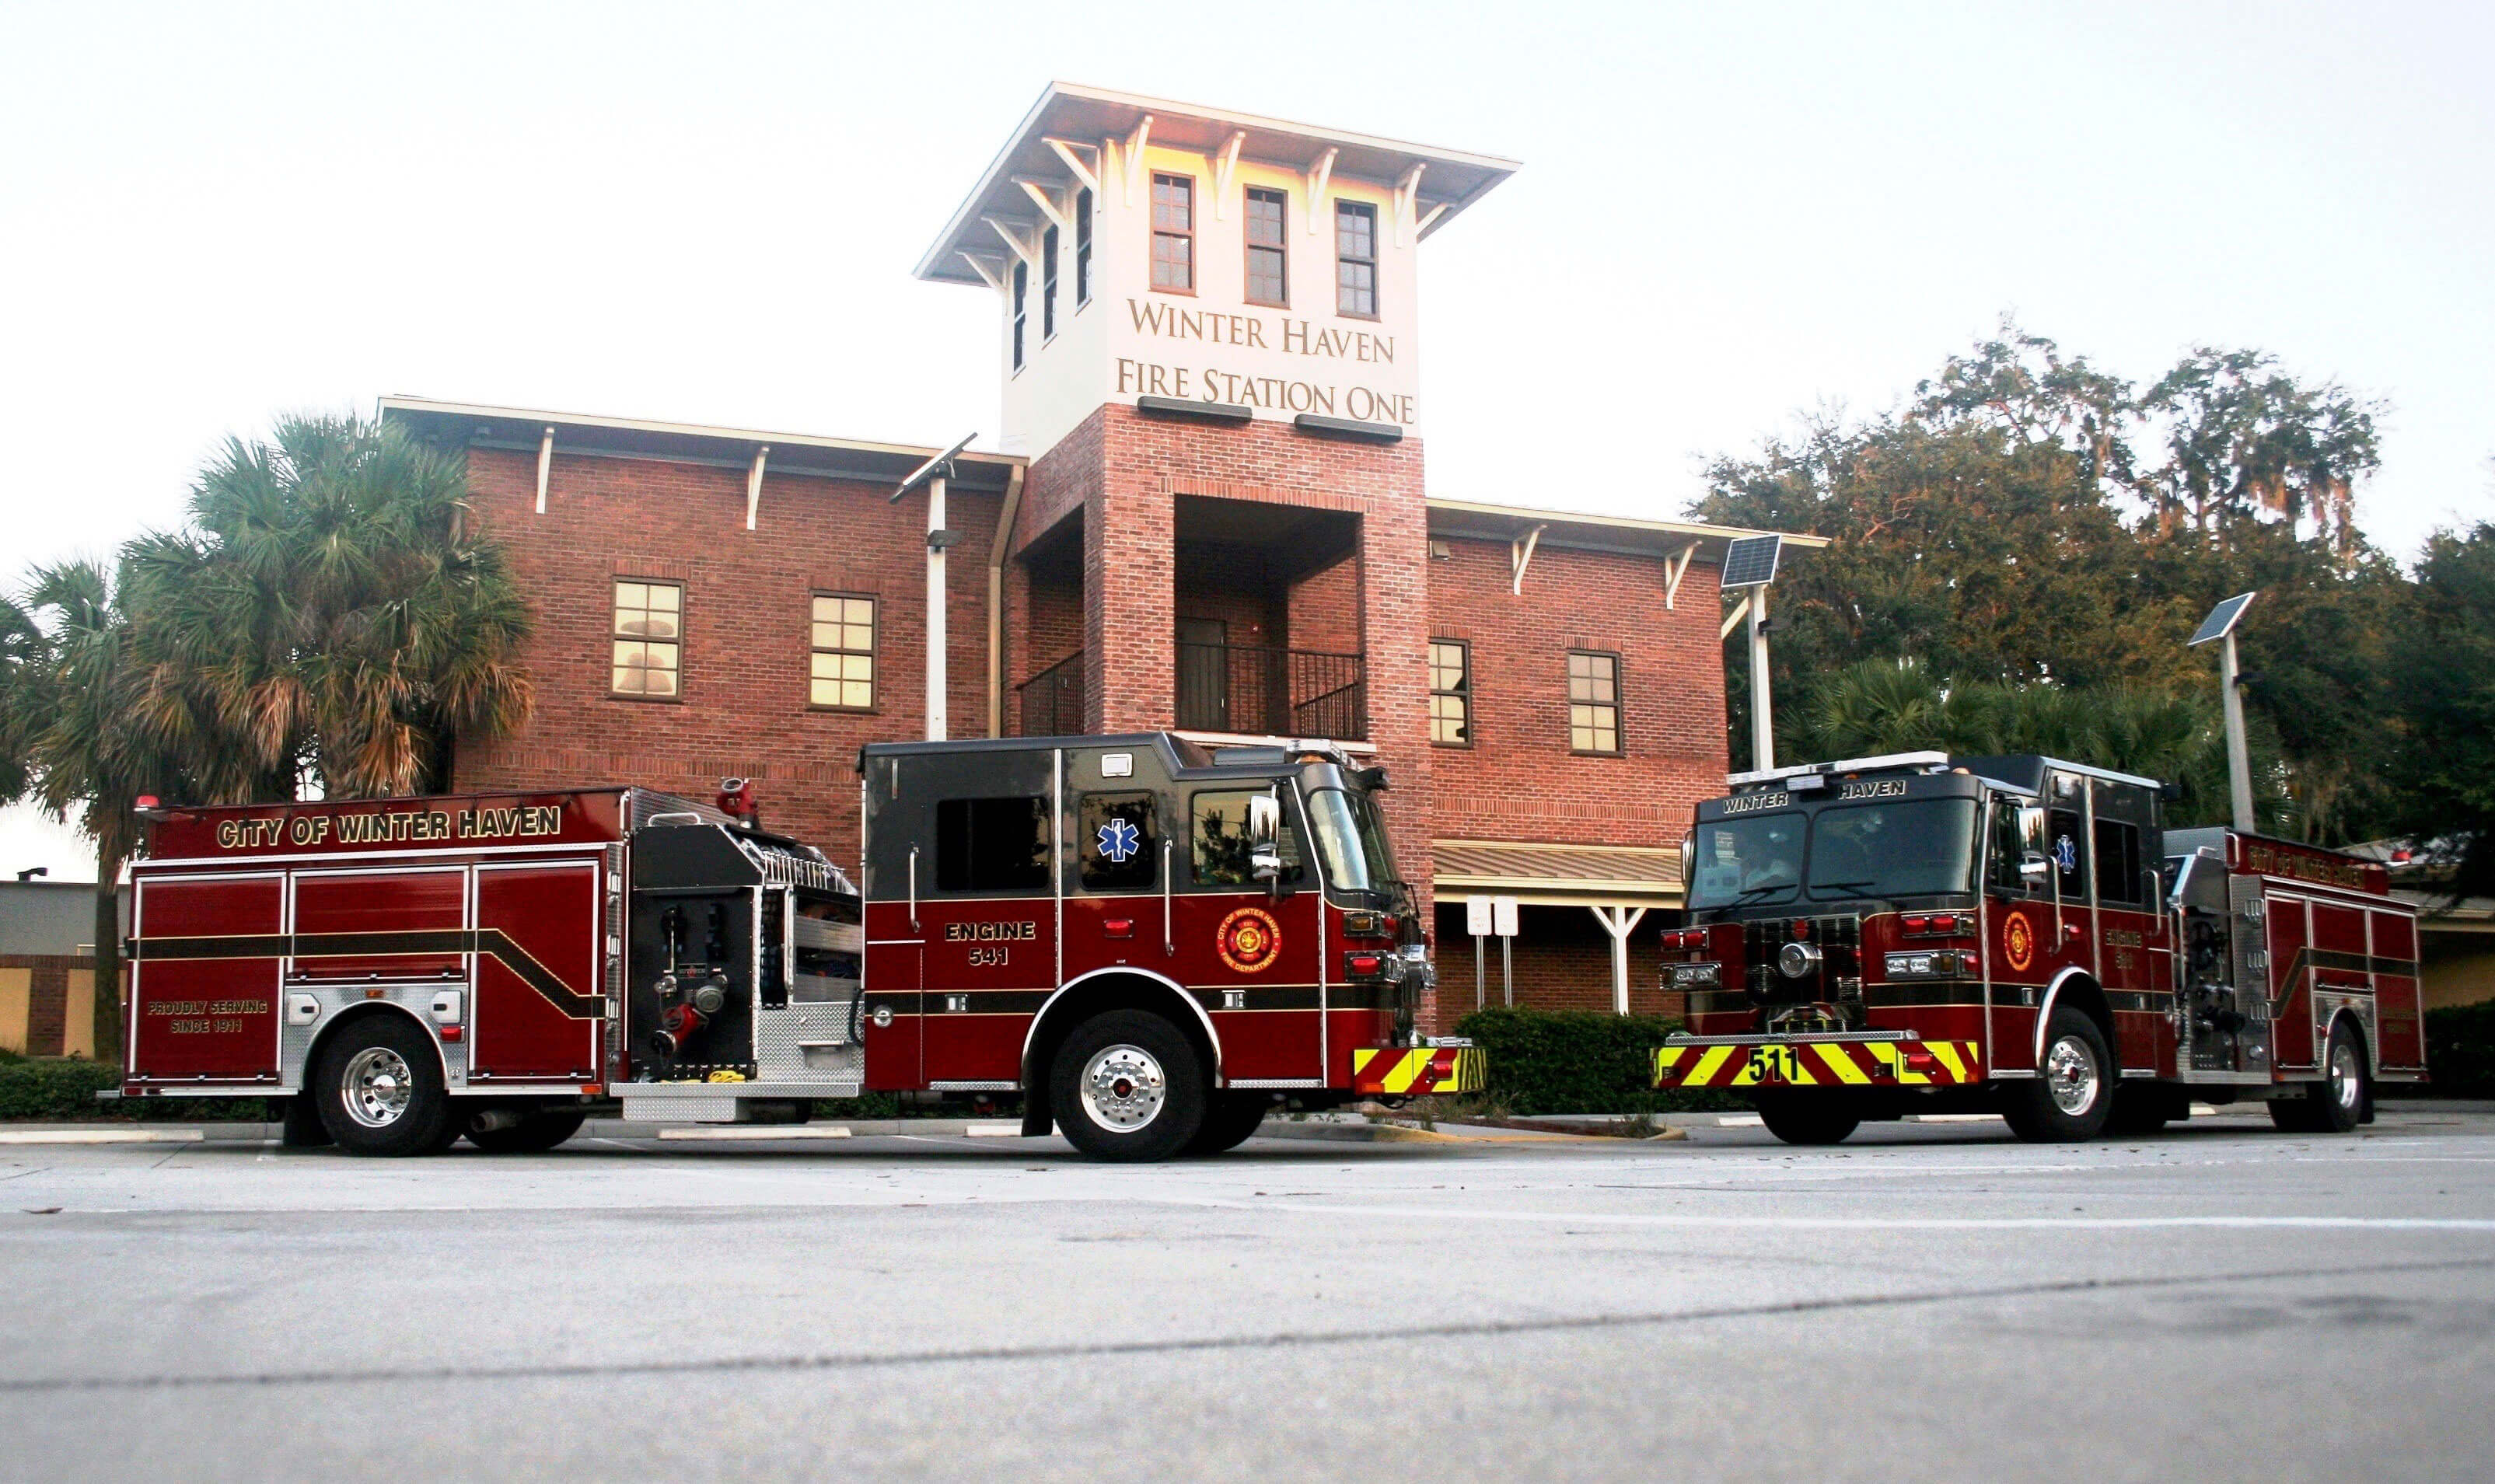 Fire Department City Of Winter Haven